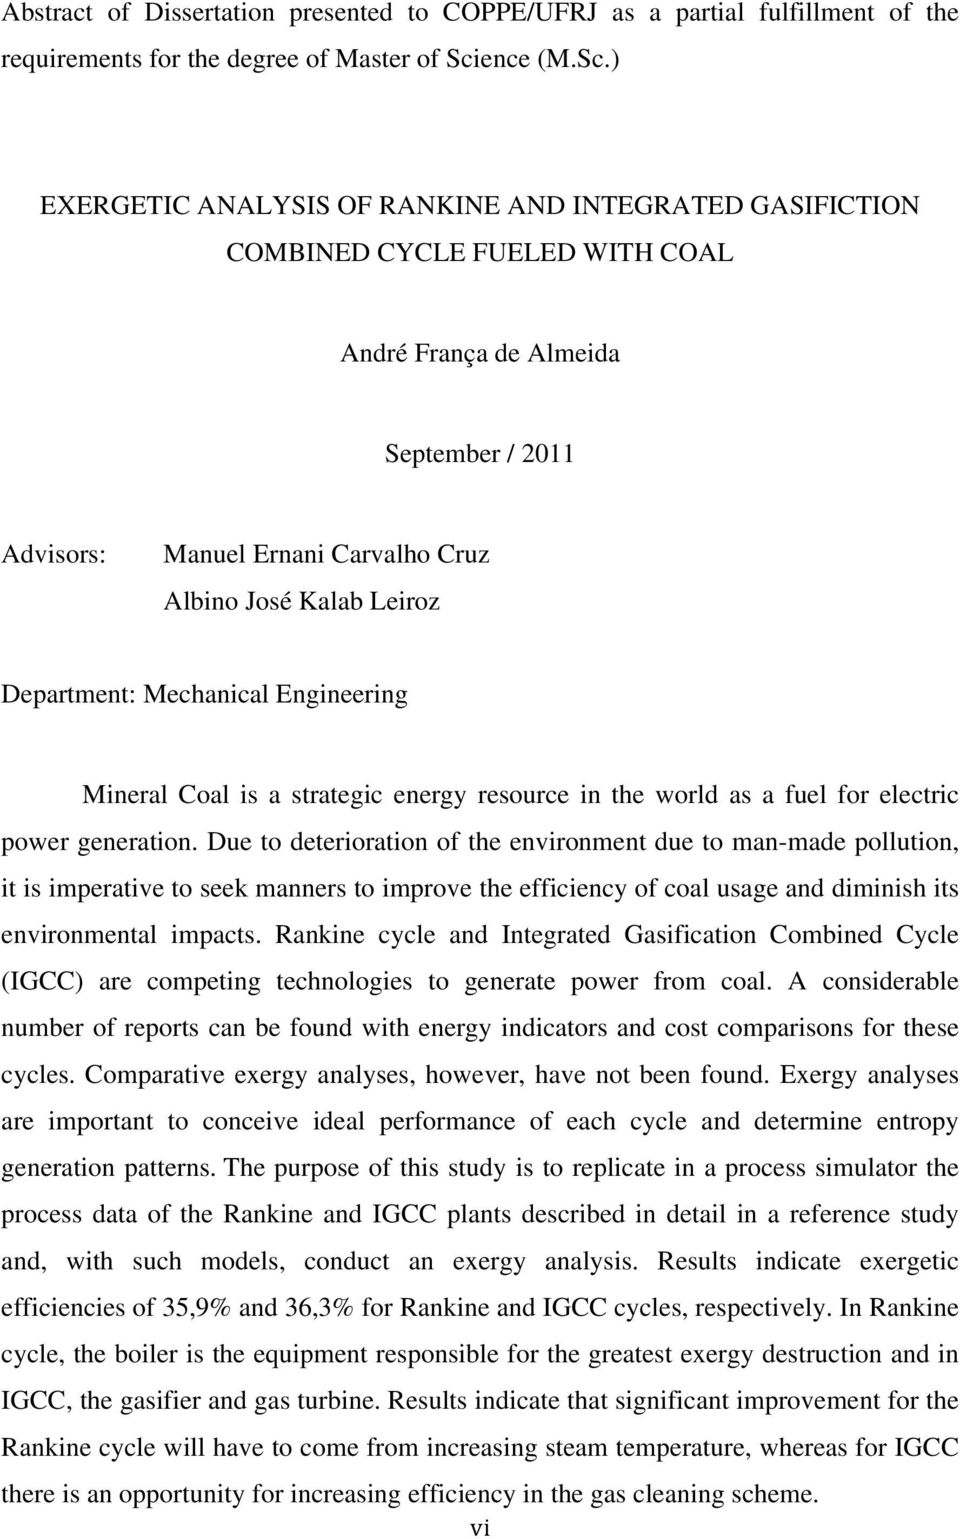 ) EXERGETIC ANALYSIS OF RANKINE AND INTEGRATED GASIFICTION COMBINED CYCLE FUELED WITH COAL André França de Almeida September / 2011 Advisors: Manuel Ernani Carvalho Cruz Albino José Kalab Leiroz